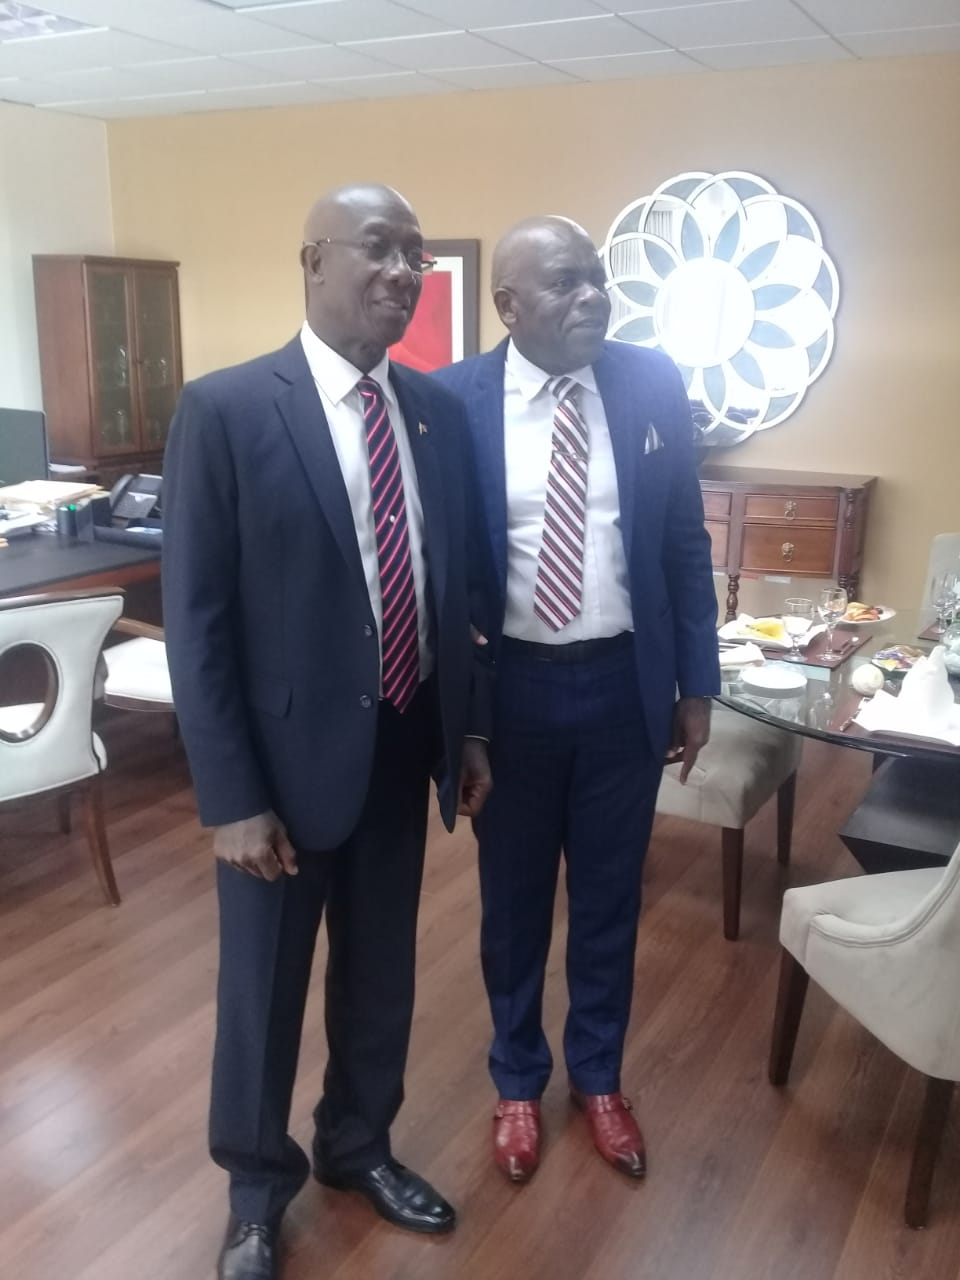 The CARICOM Special Rapporteur on Disability, Senator Dr. Floyd Morris (R) pays a courtesy call on Trinidad and Tobago Prime Minister, Hon. Dr. Ketih Rowley (L) in his office